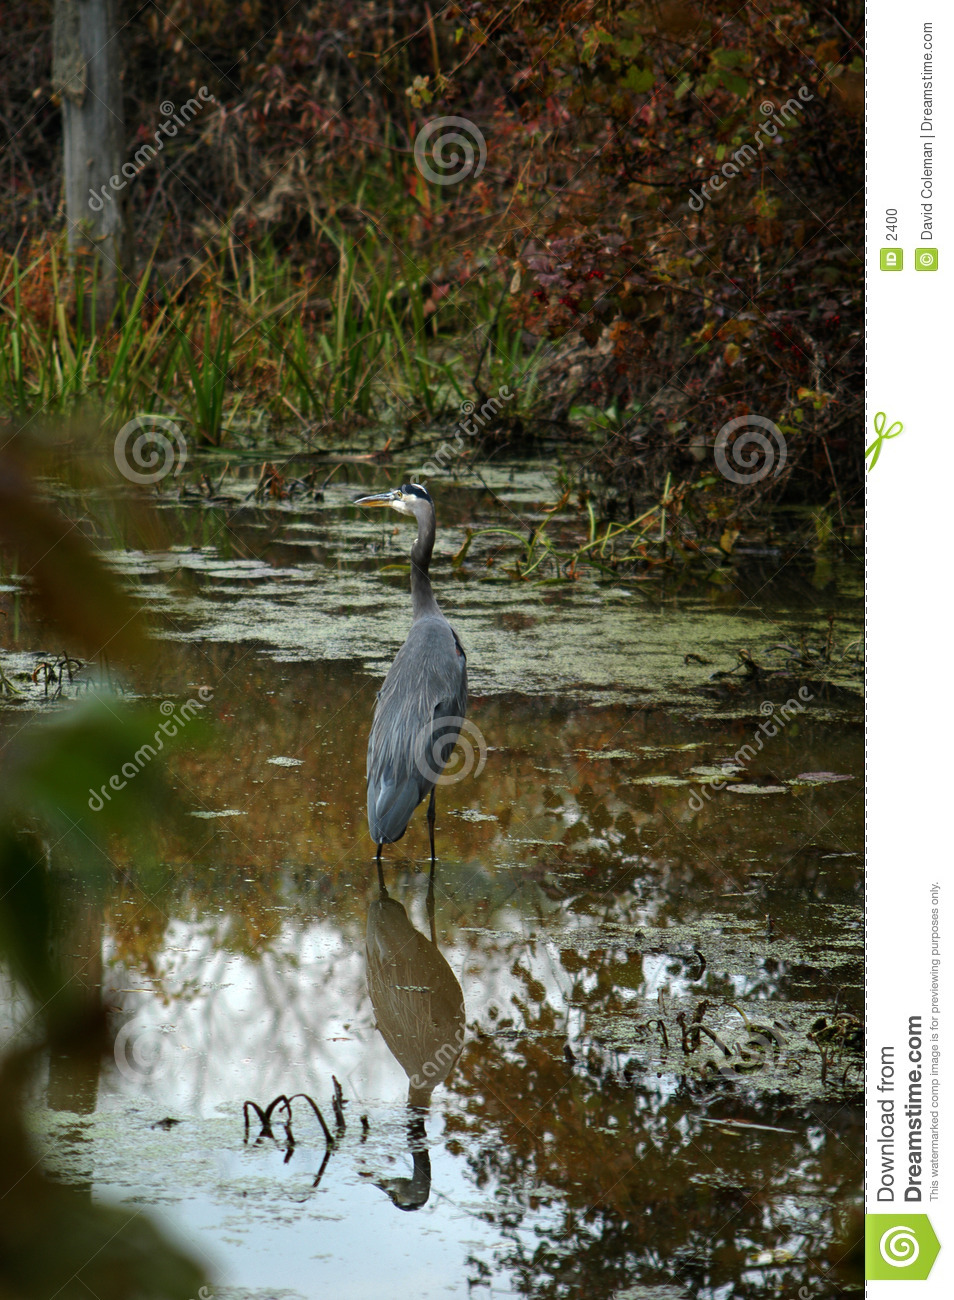 Heron in Canal